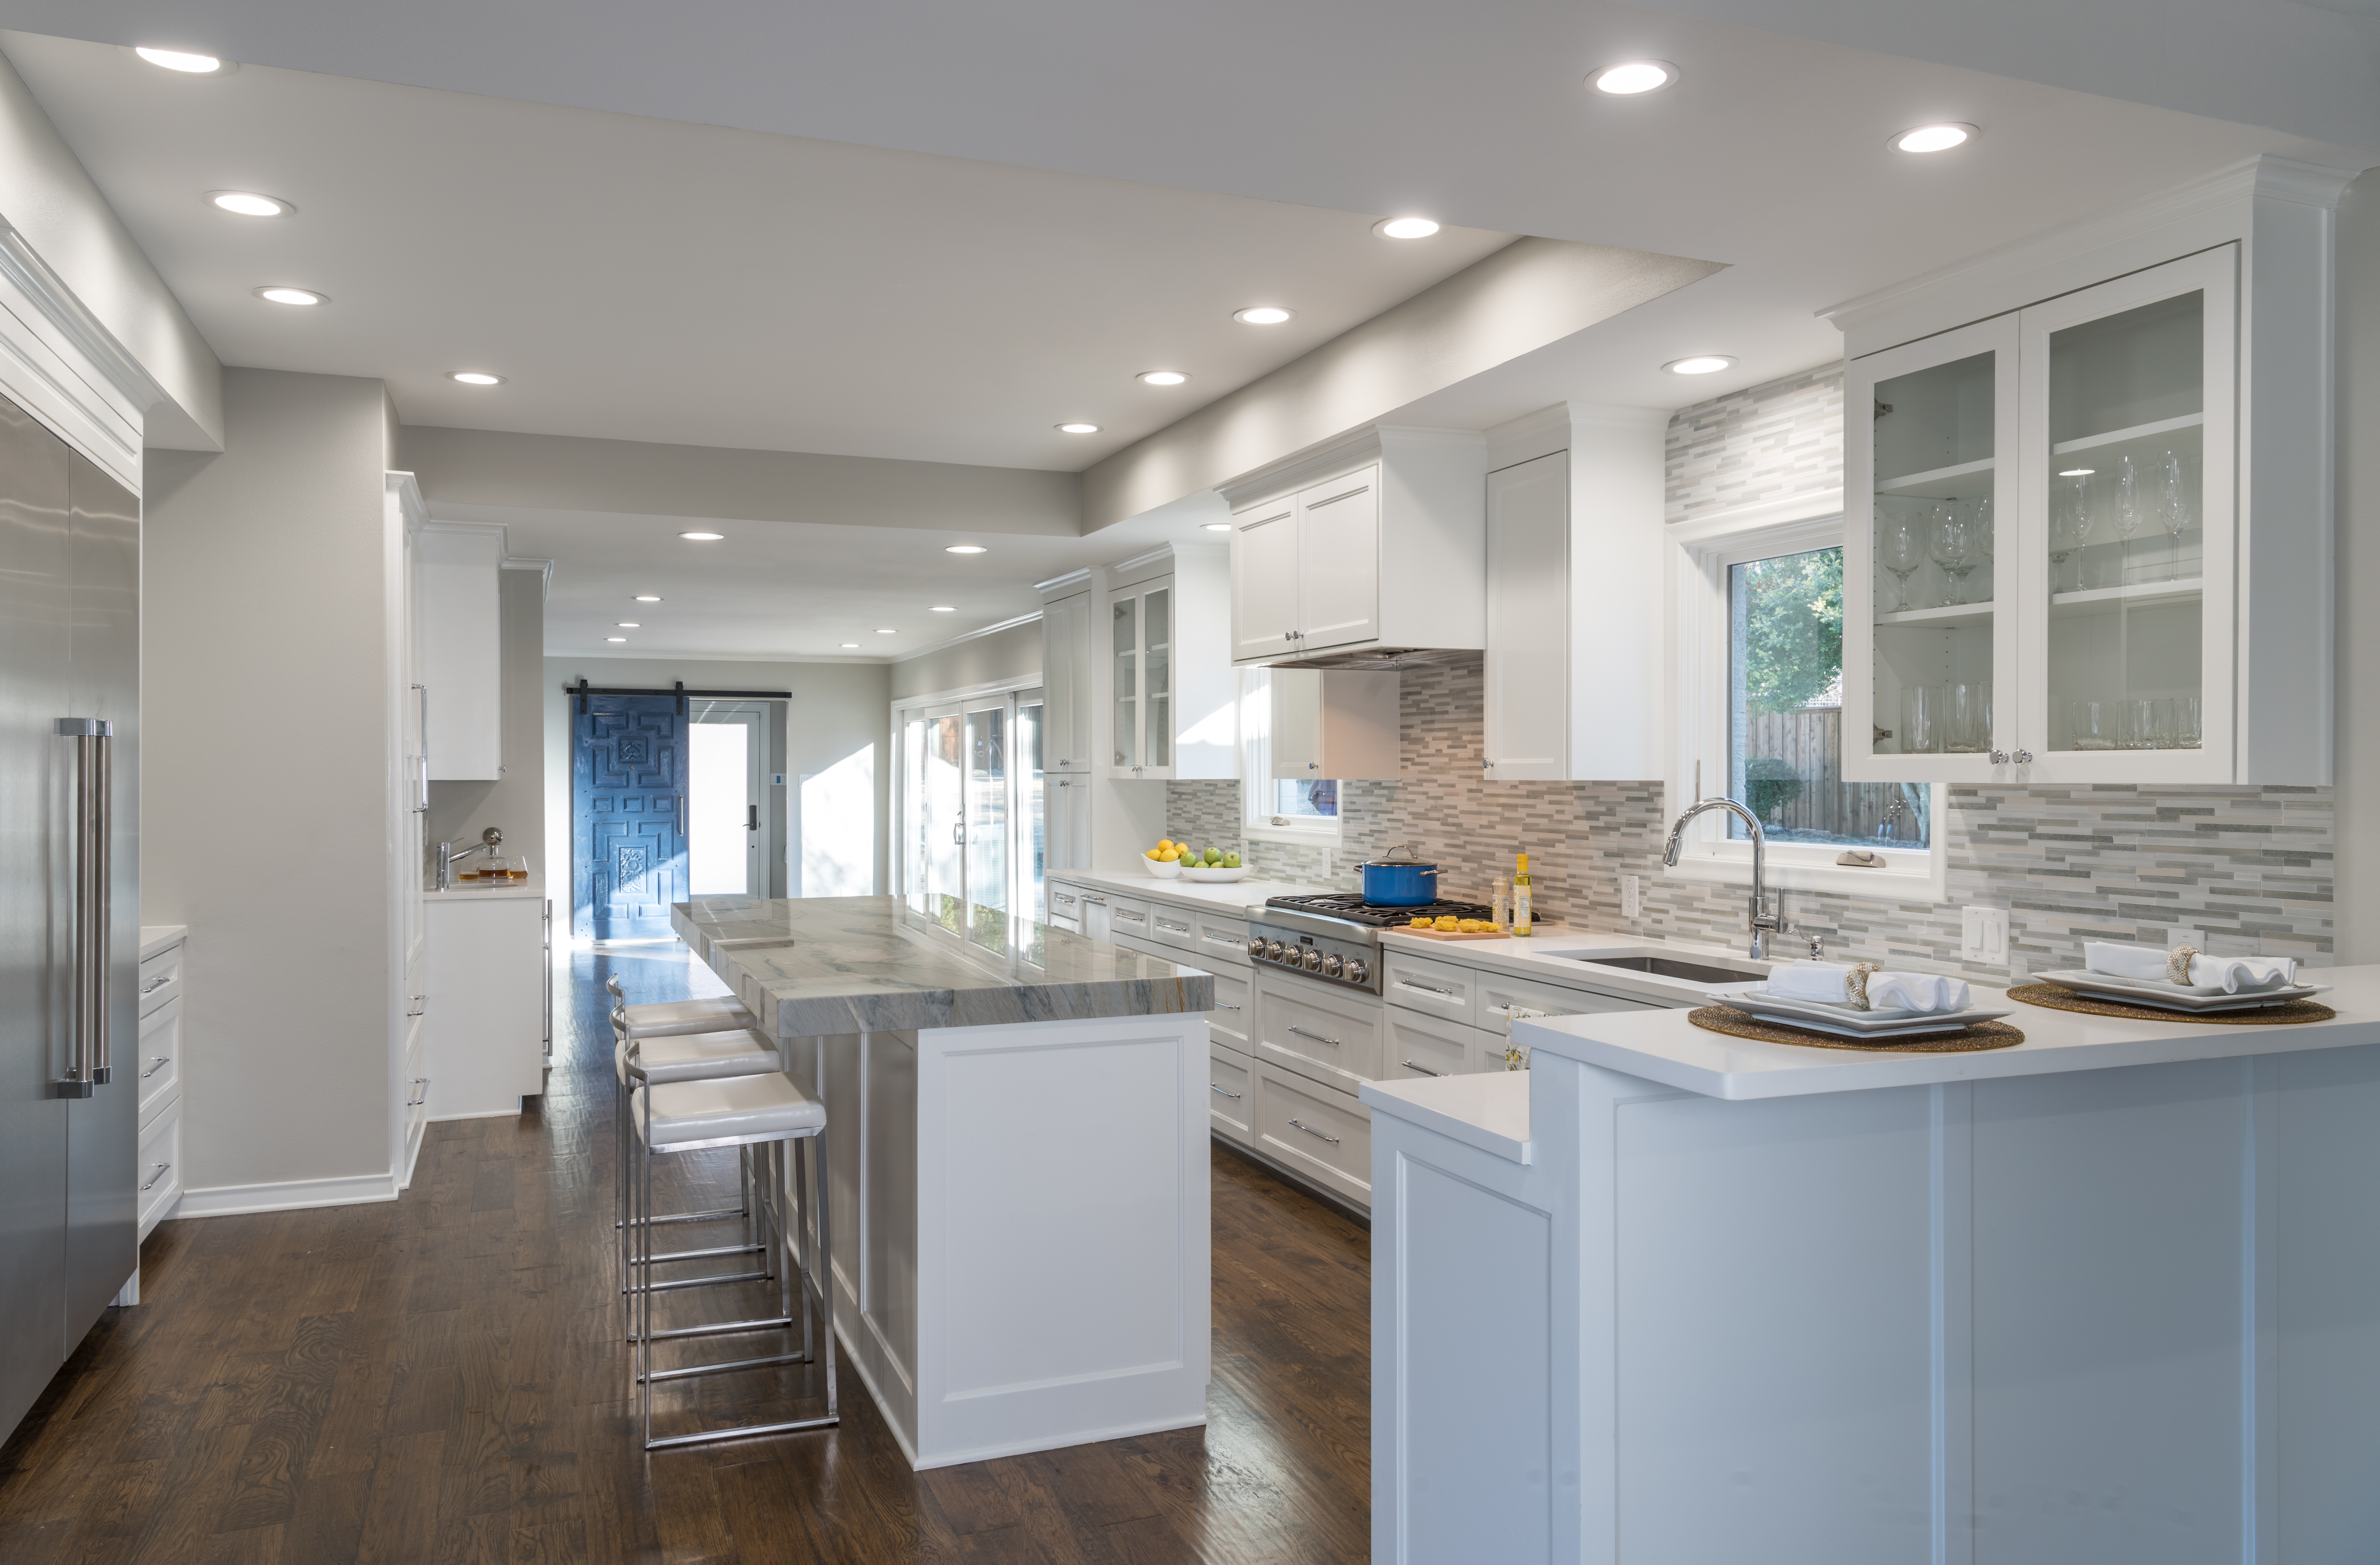 Adding new life top 4 kitchen trends you have to try haven lifestyles